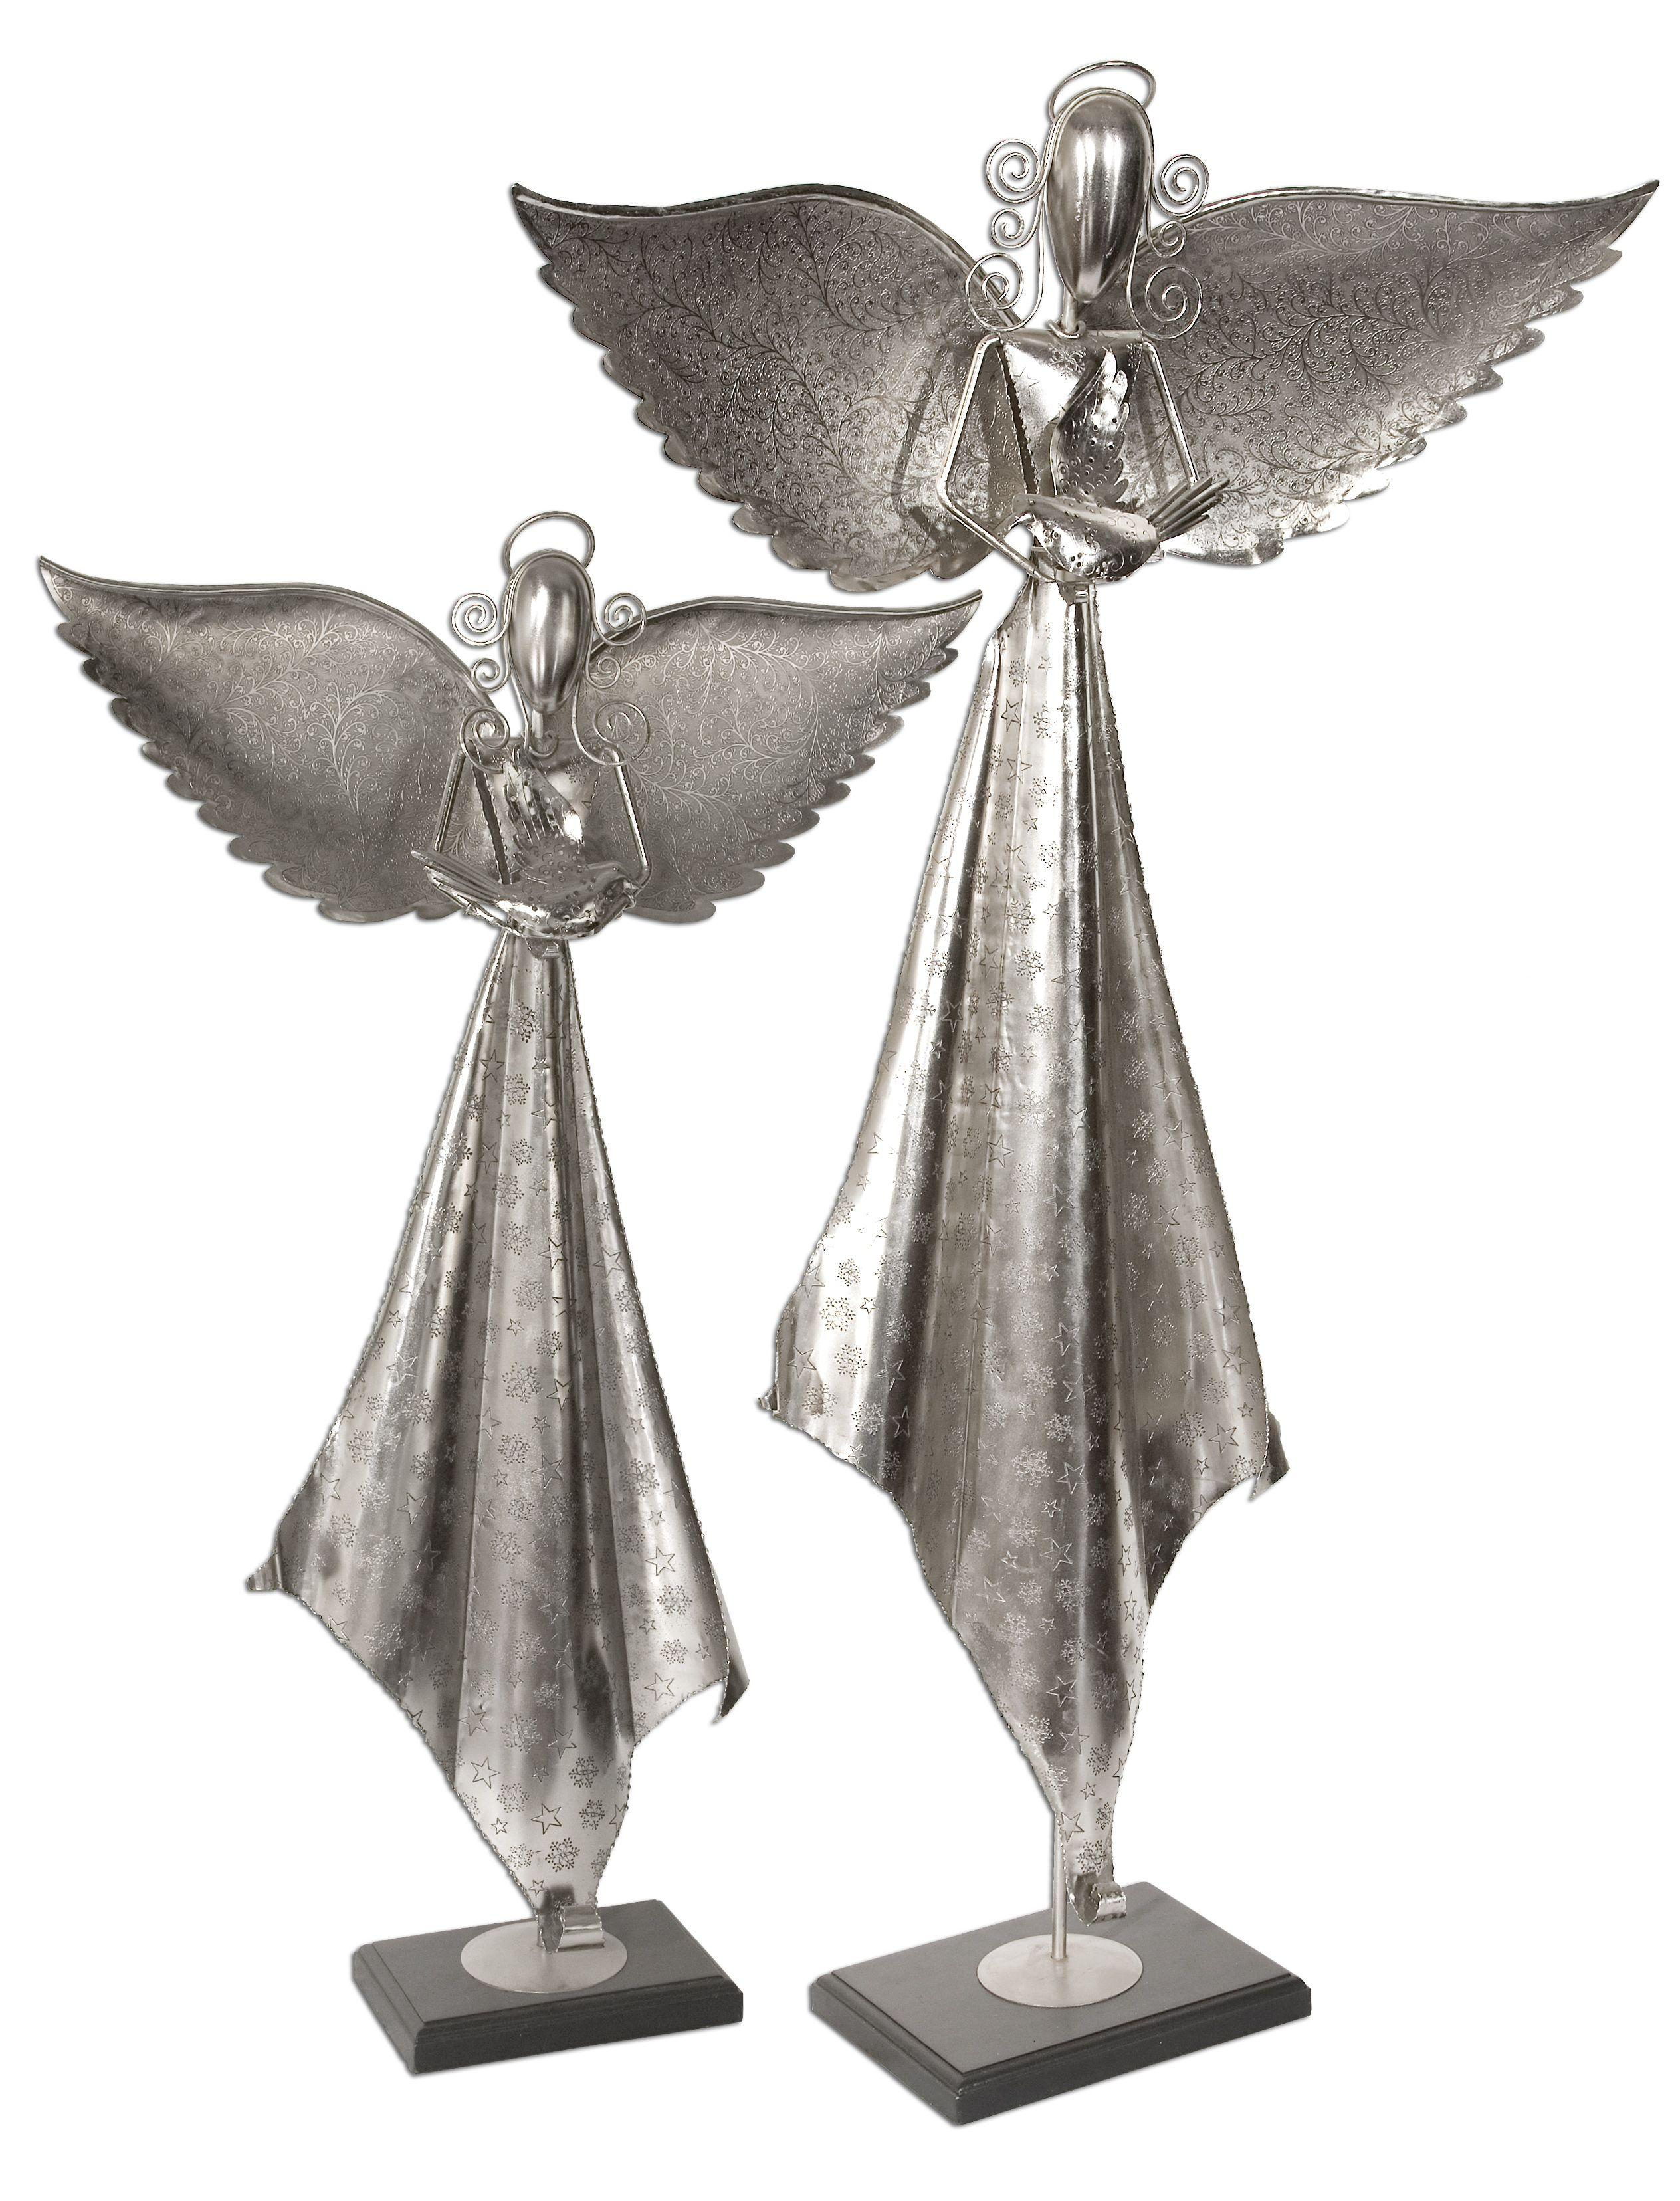 Uttermost Accessories Angels Sculpture Set of 2 - Item Number: 19570